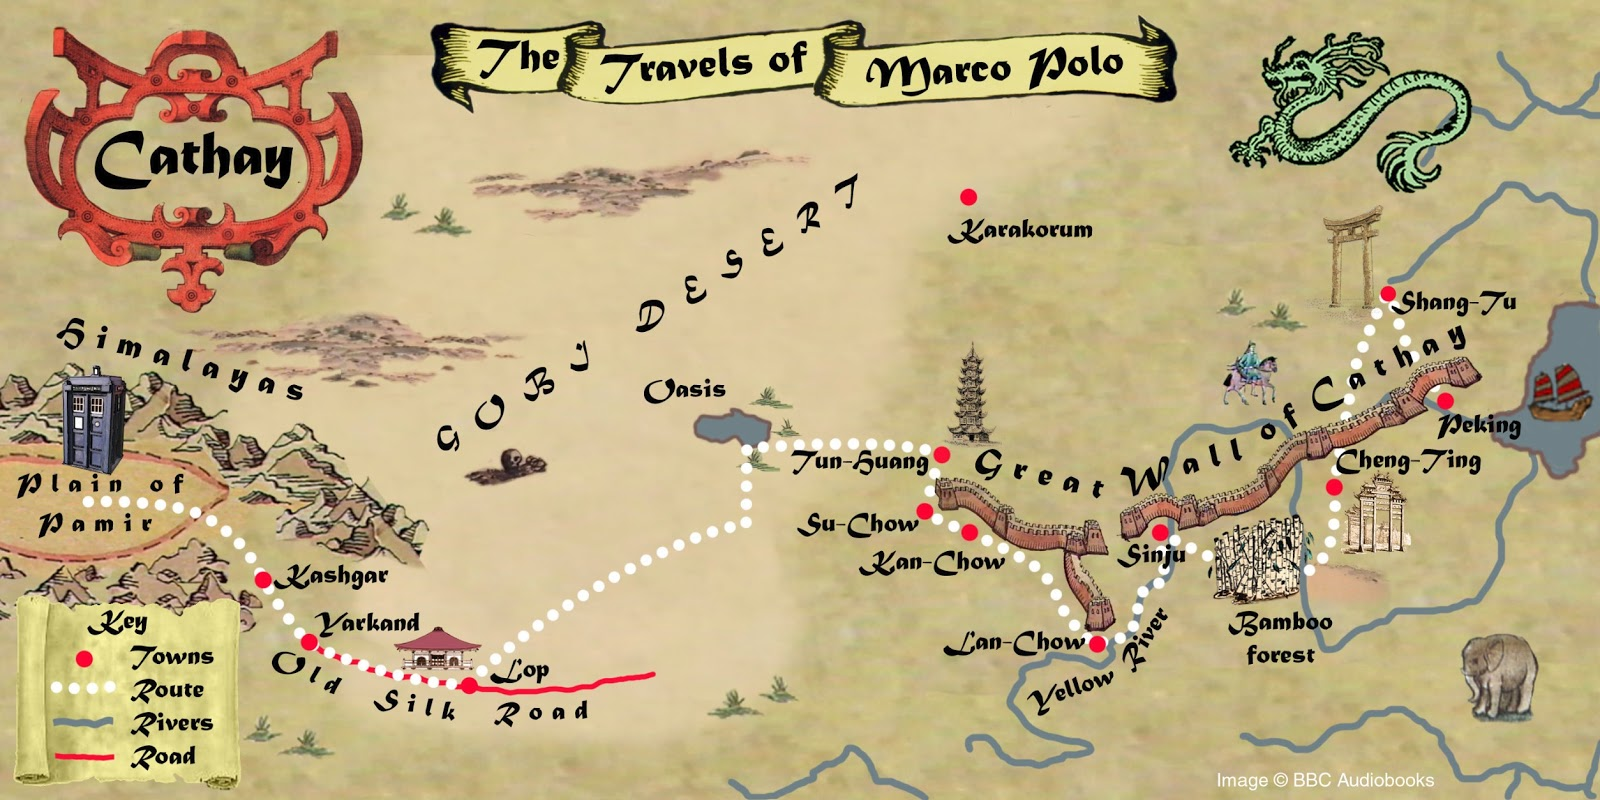 Doctor Who – Marco Polo Map